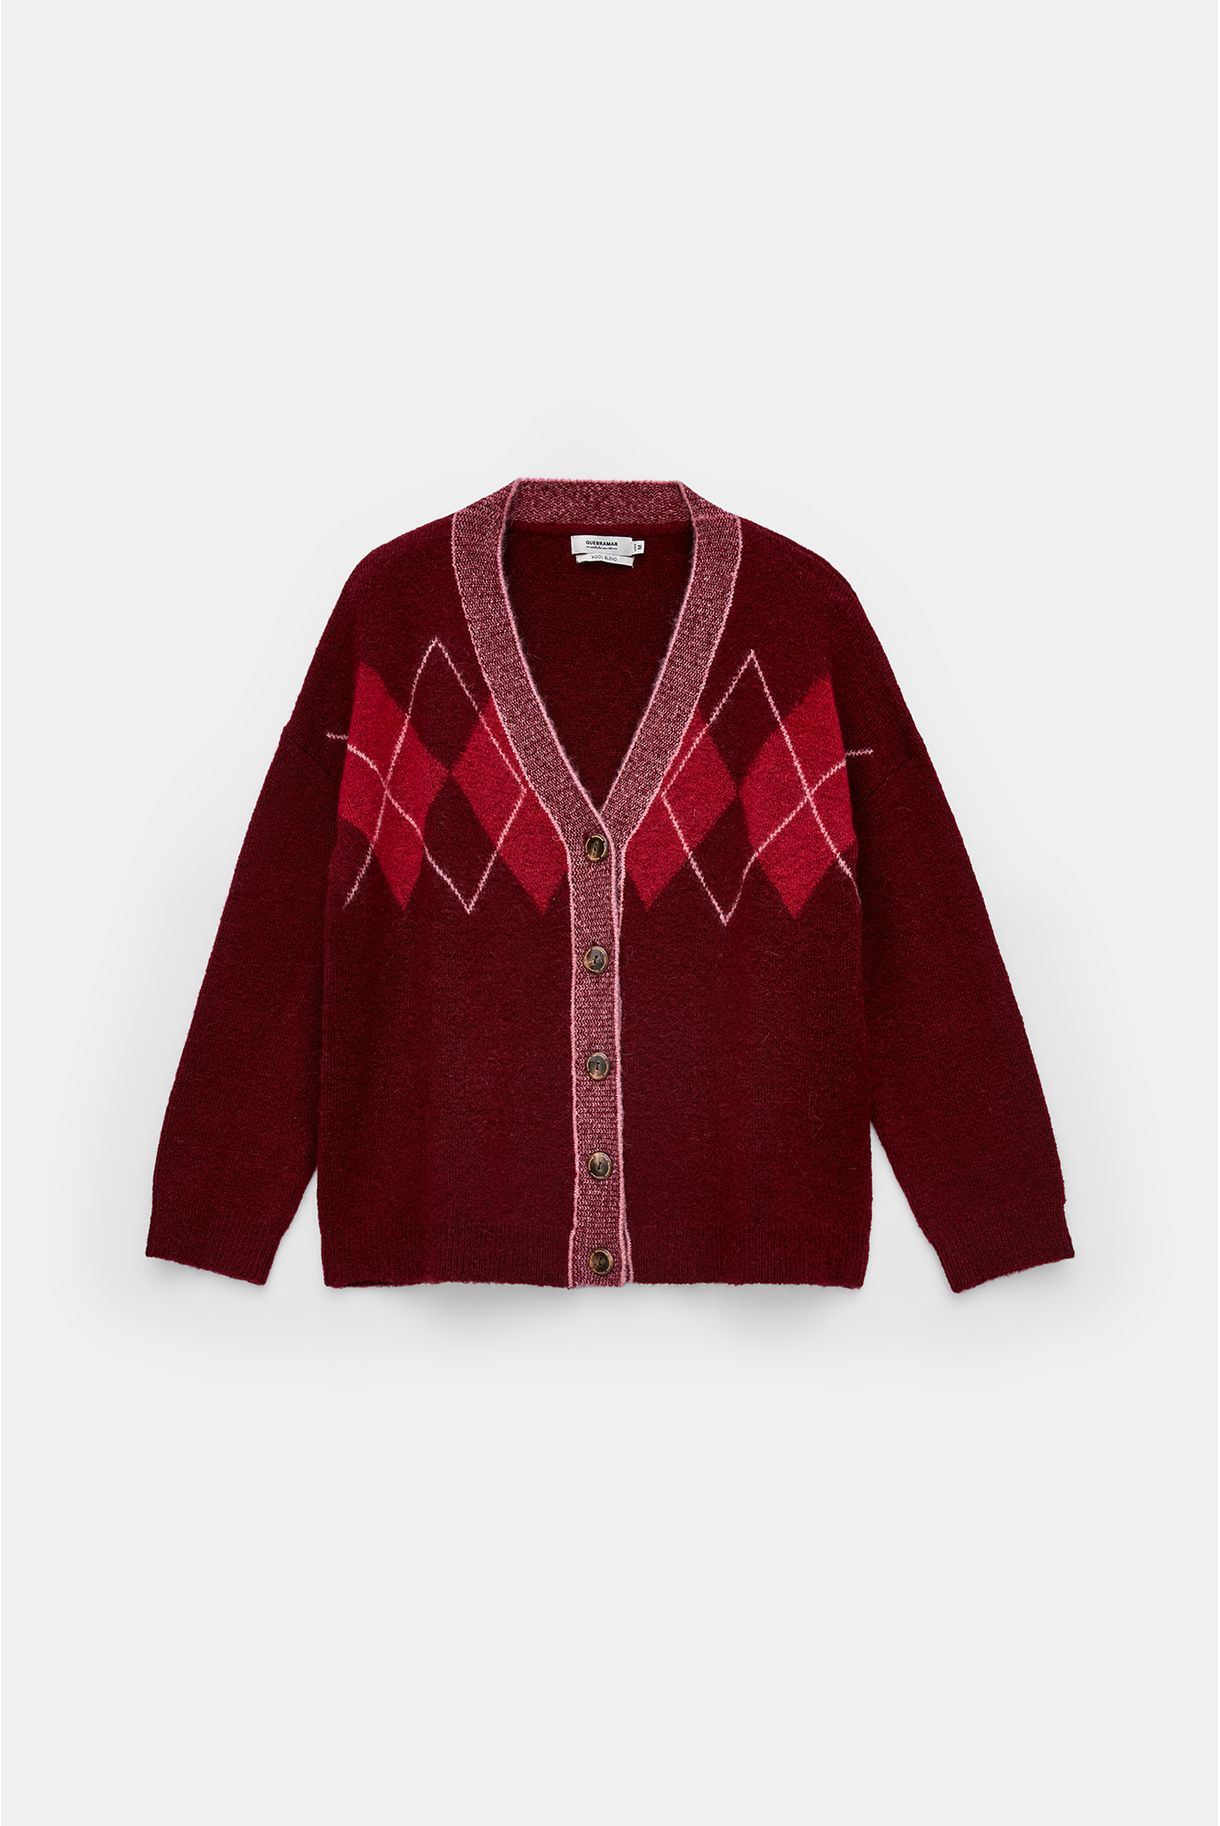 KNITTED JACKET WITH ROCKETS